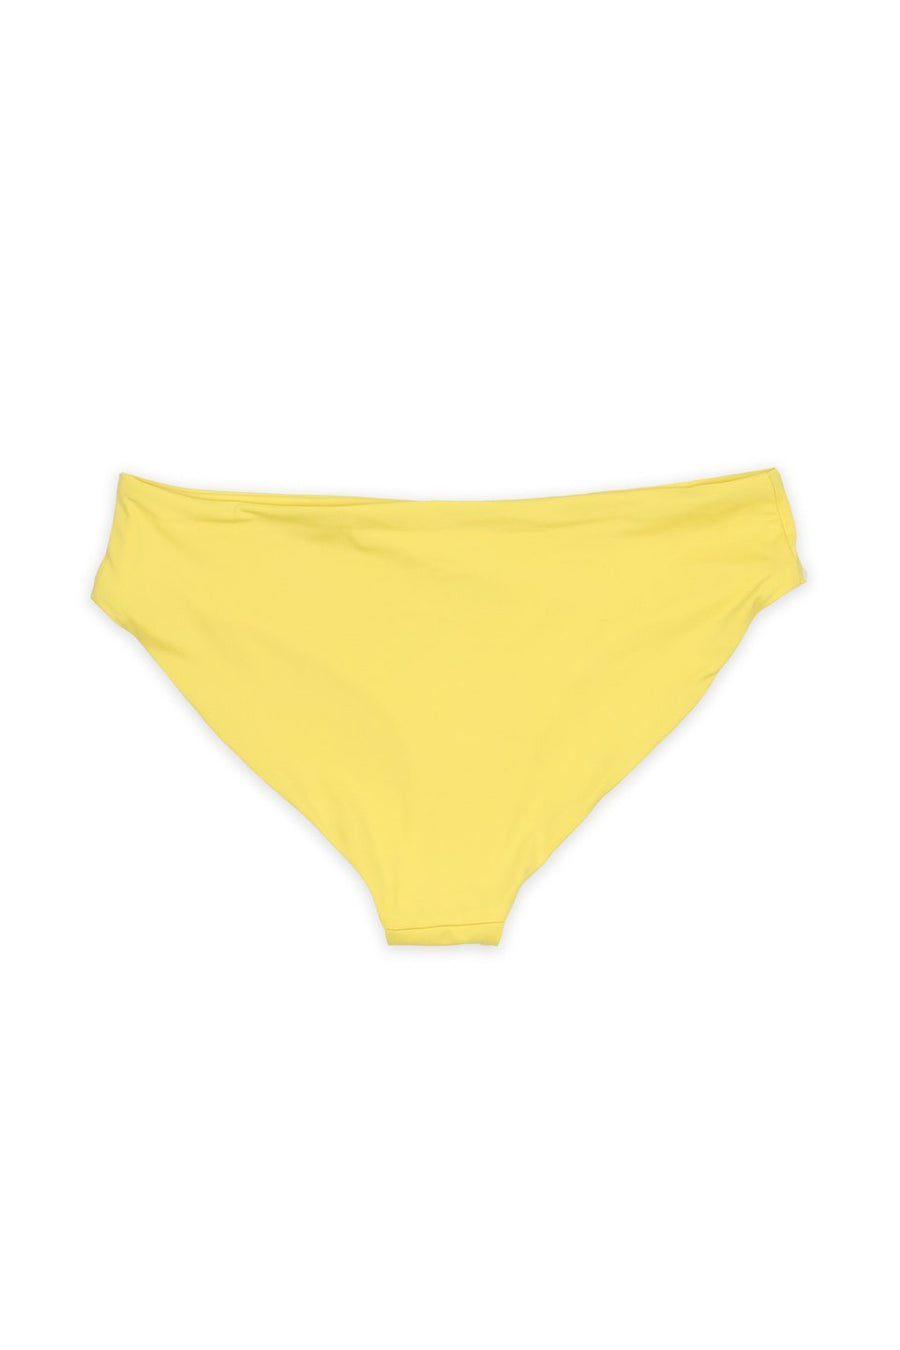 SEAMLESS MODERATE CLASSIC BOTTOM - YELLOWFront View